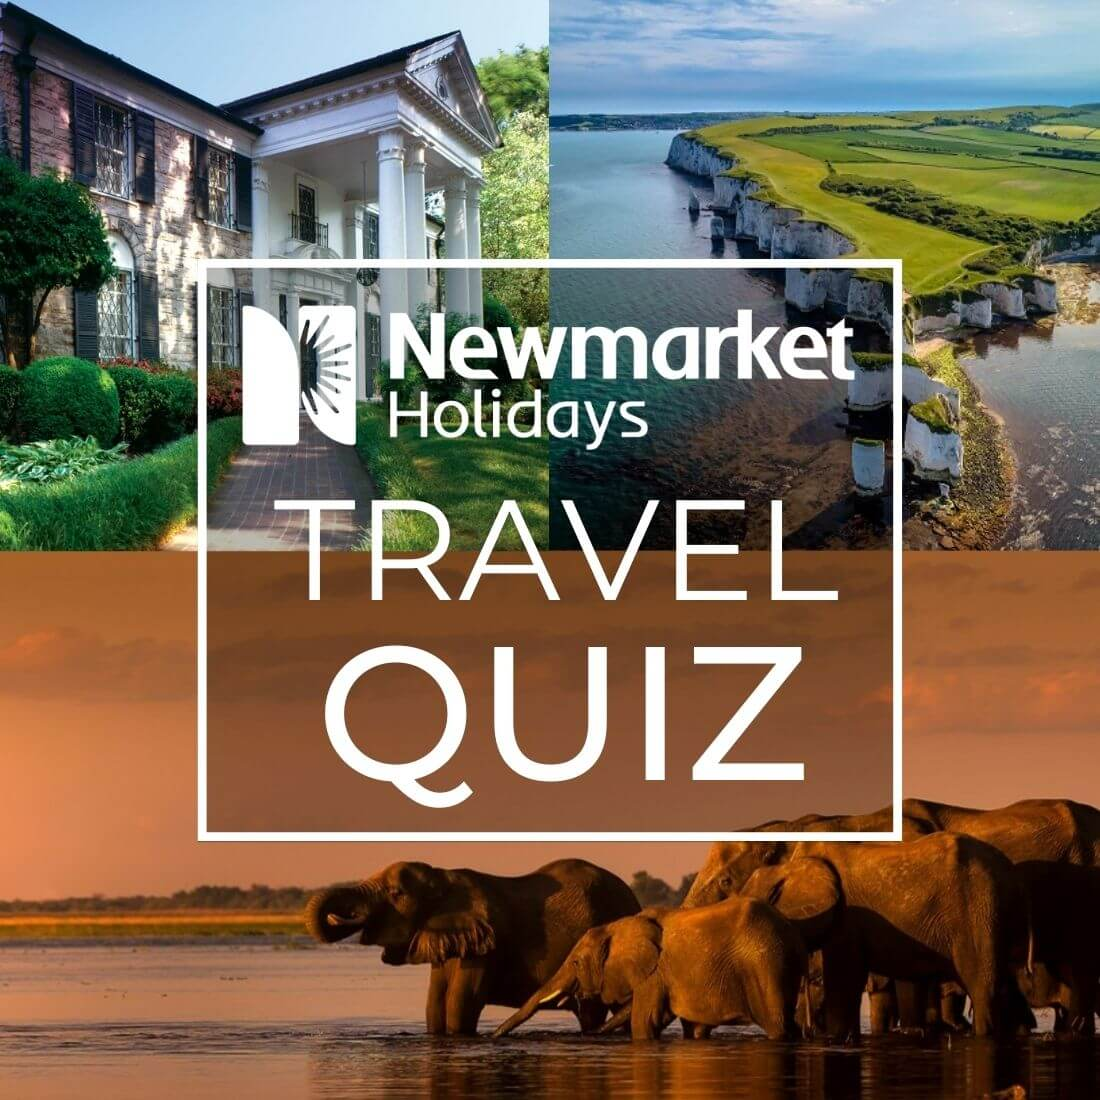 Newmarket Holiday Travel Quiz round 18